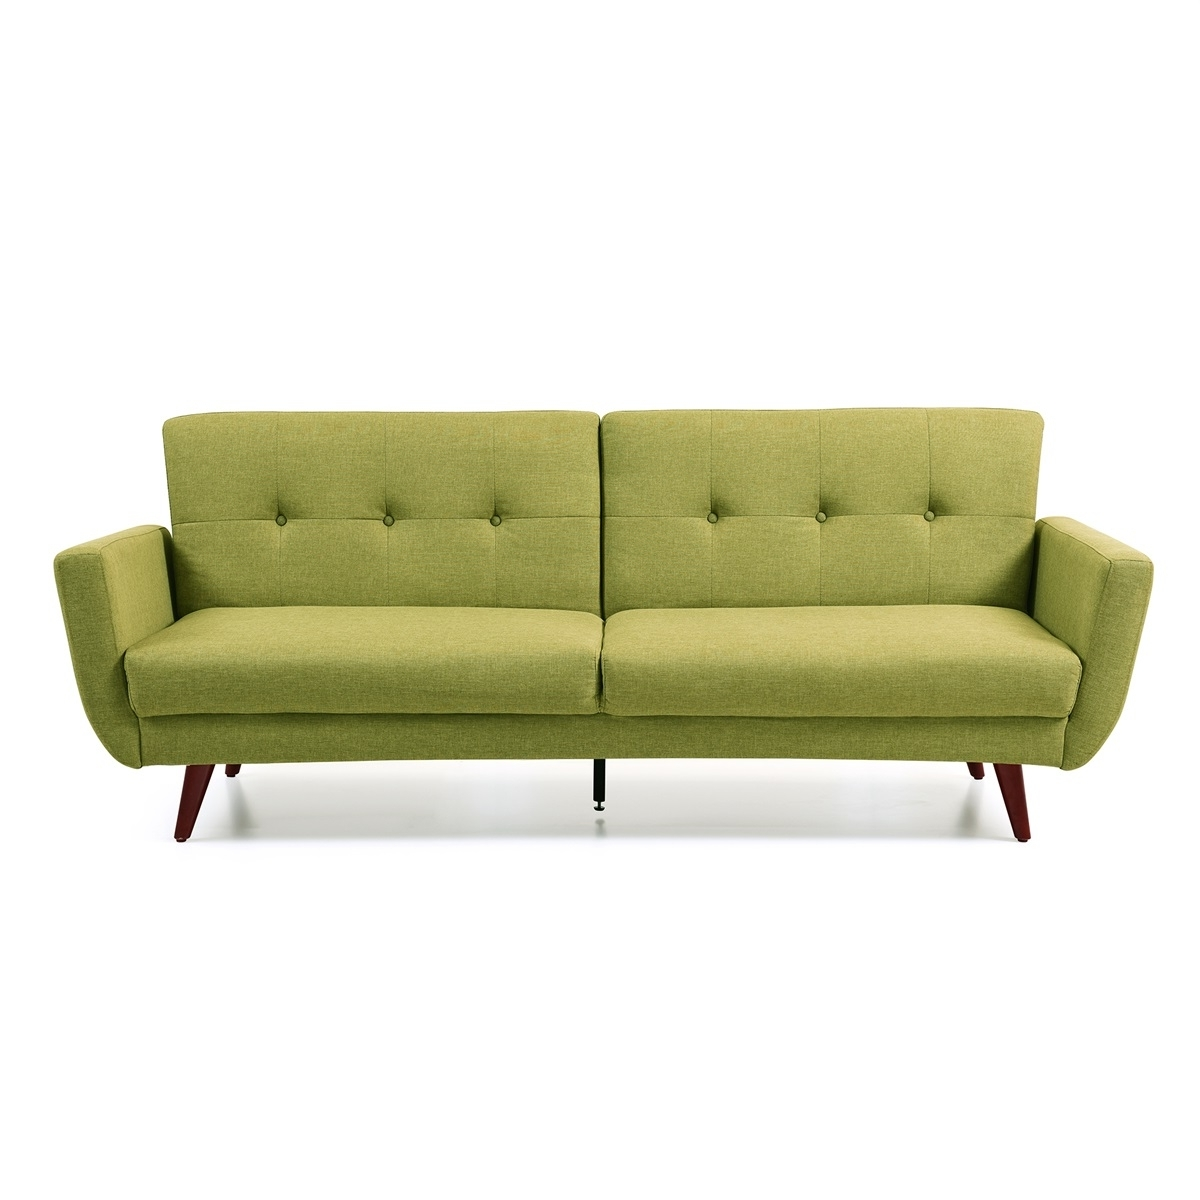 Erik Convertible Sofa Intended For Fashionable Convertible Sofas (View 6 of 10)